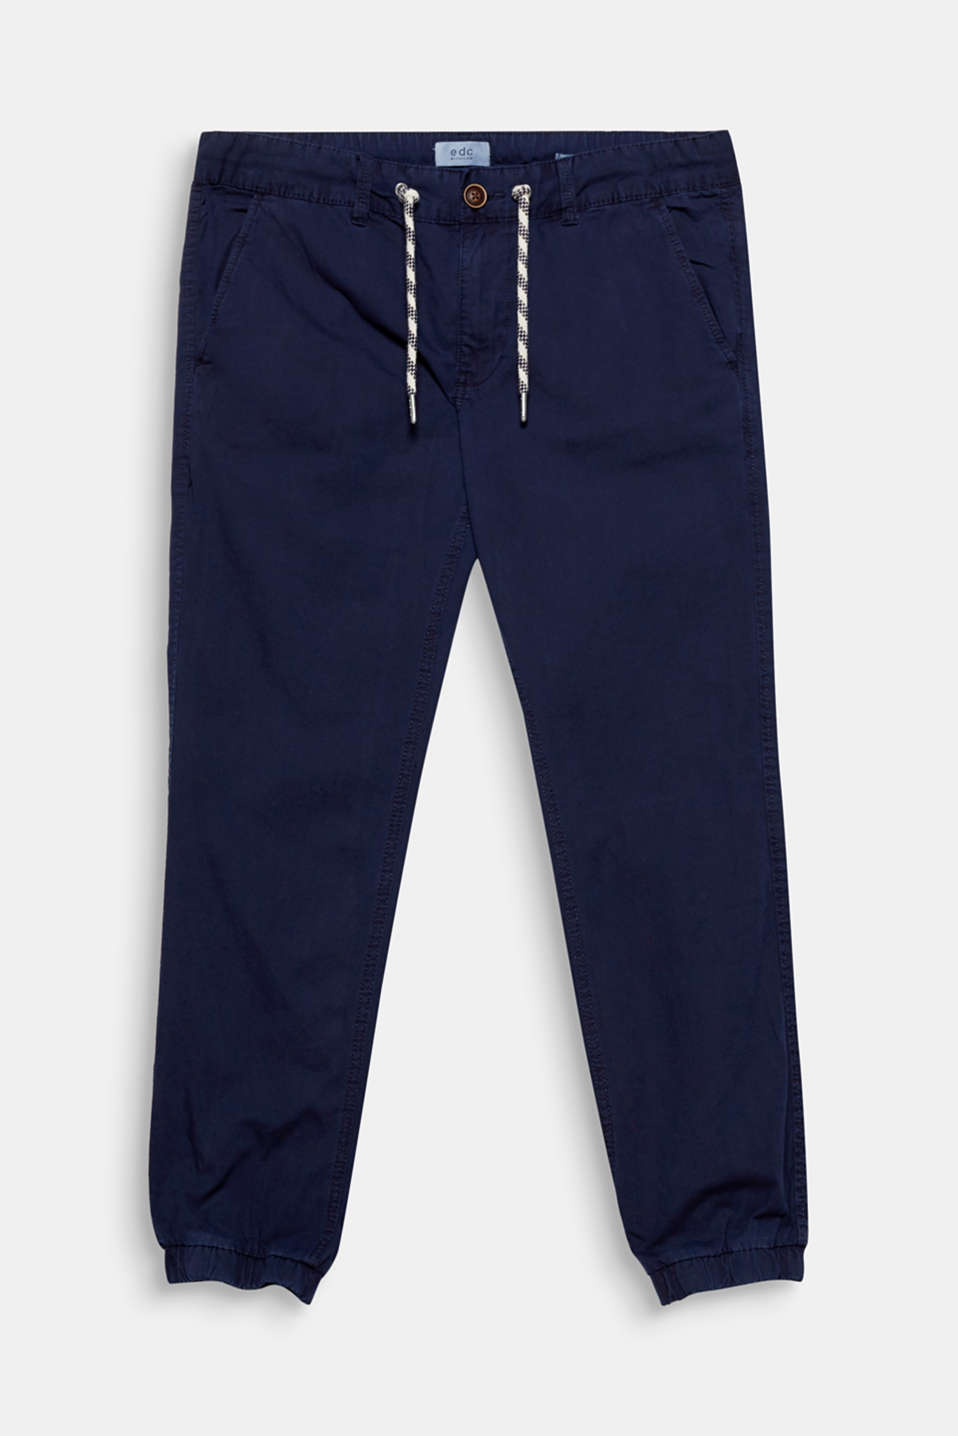 Cool street look! The stretchy hem borders + patterned drawstring ties make these joggers extremely eye-catching.